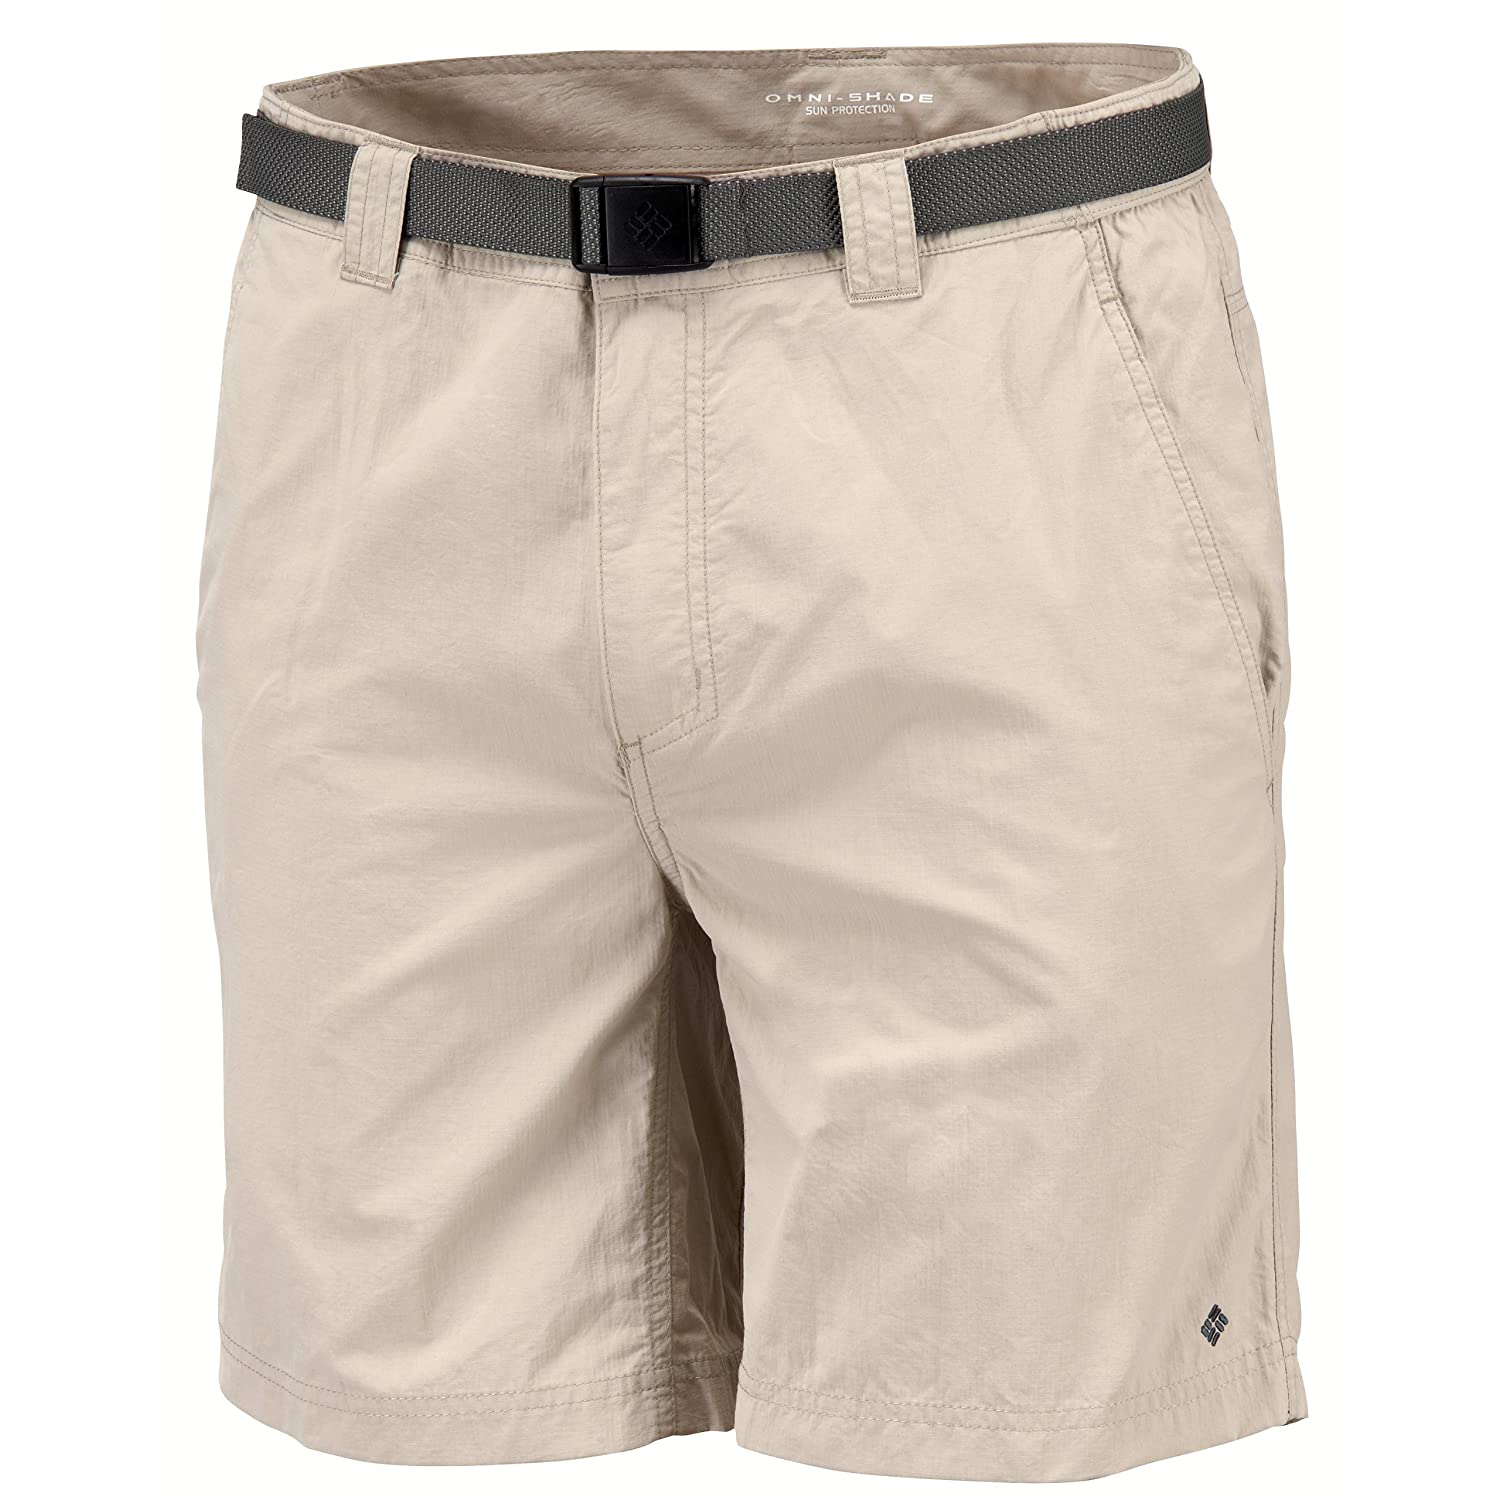 Columbia Wandershorts für Herren, Silver Ridge Short, Nylon AM4283